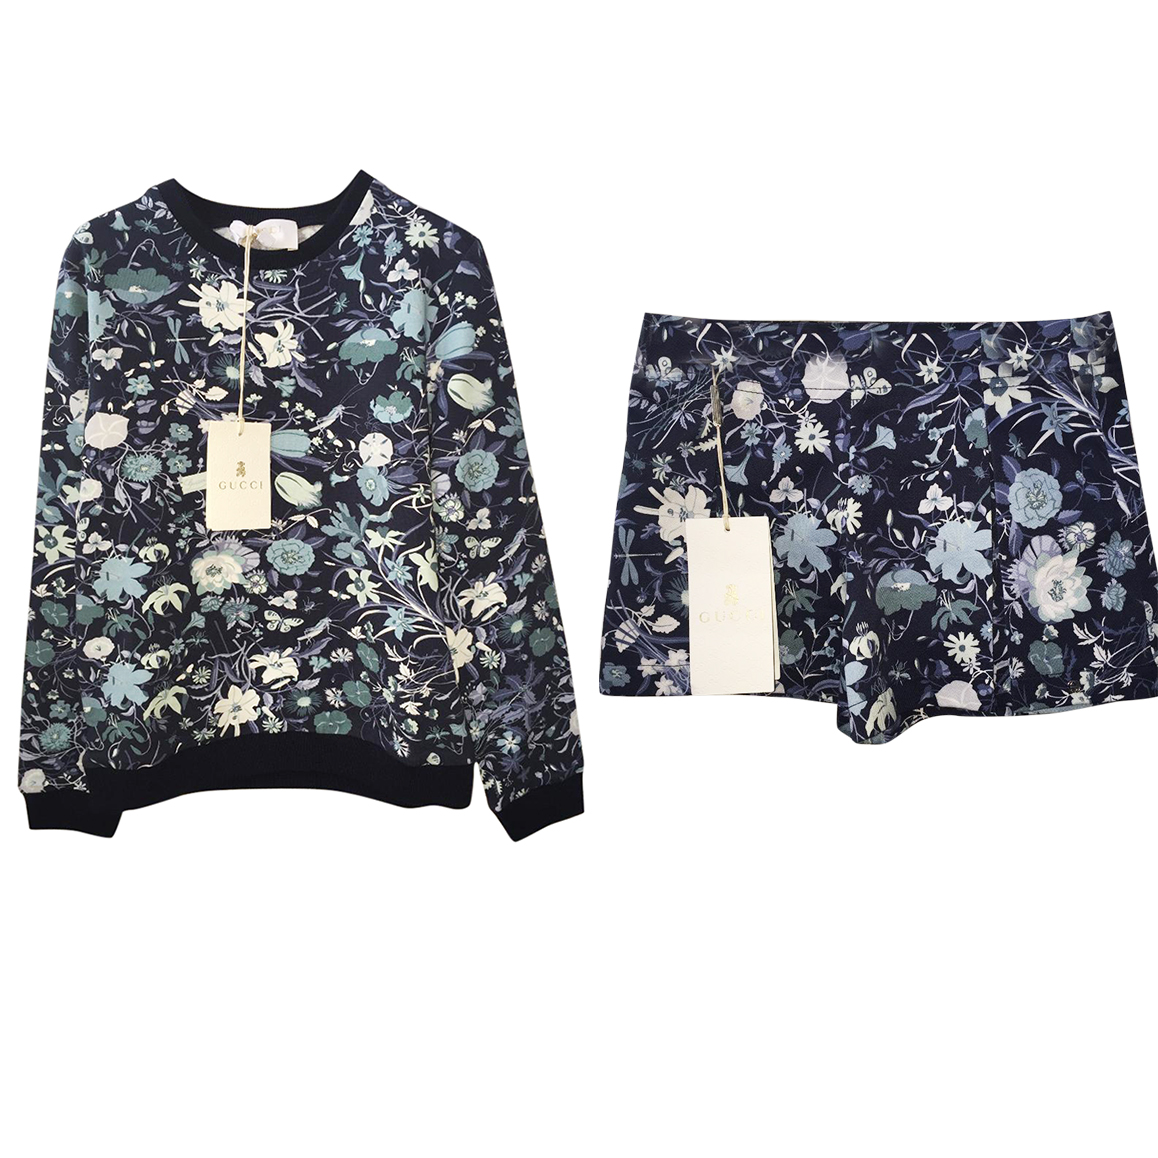 Gucci girls floral jumper and Short outfit 6 years